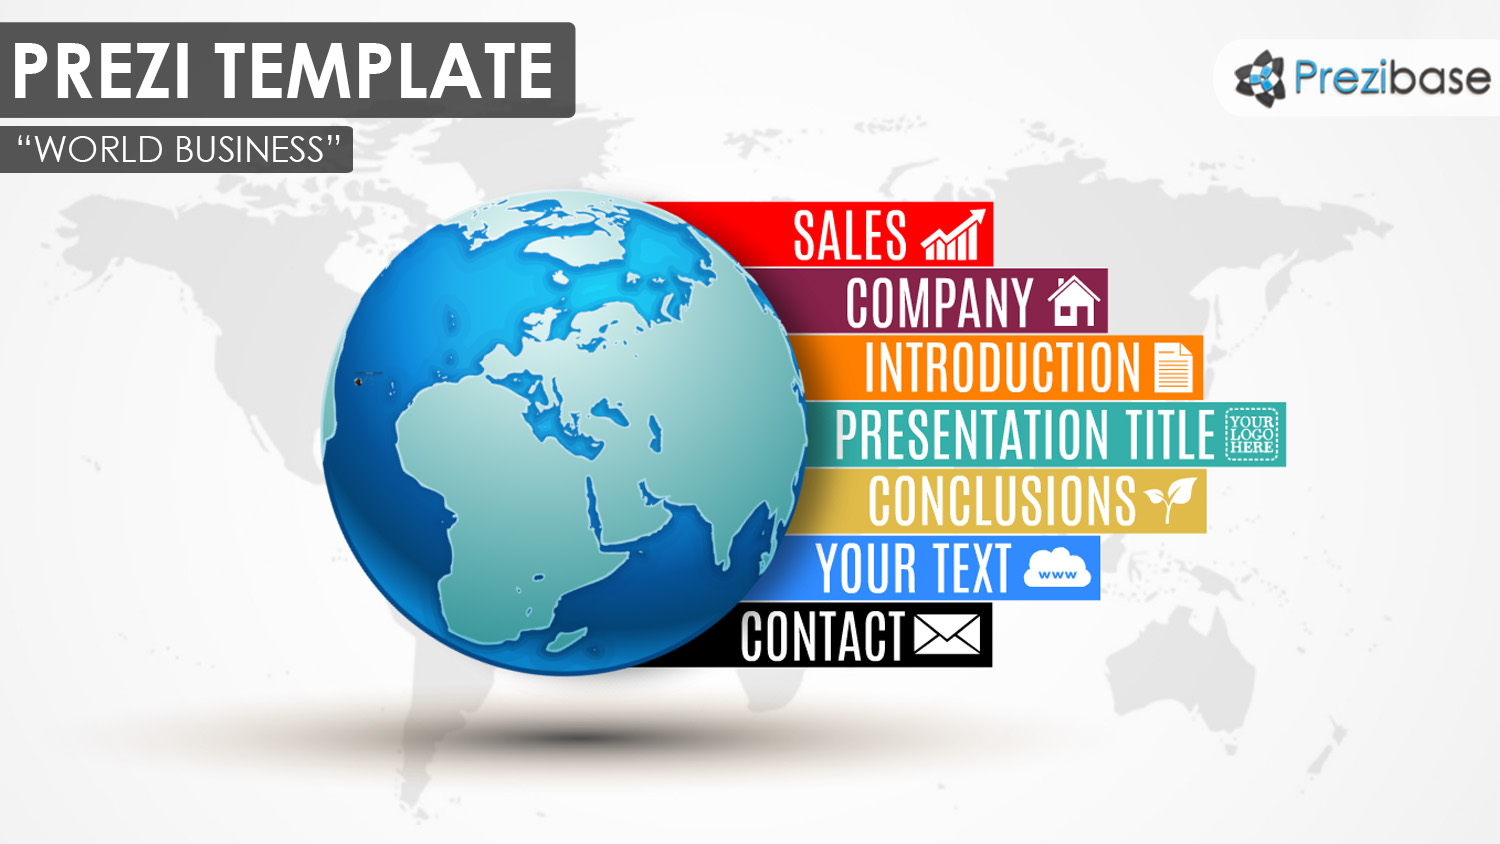 Business prezi templates prezibase for How to download prezi templates